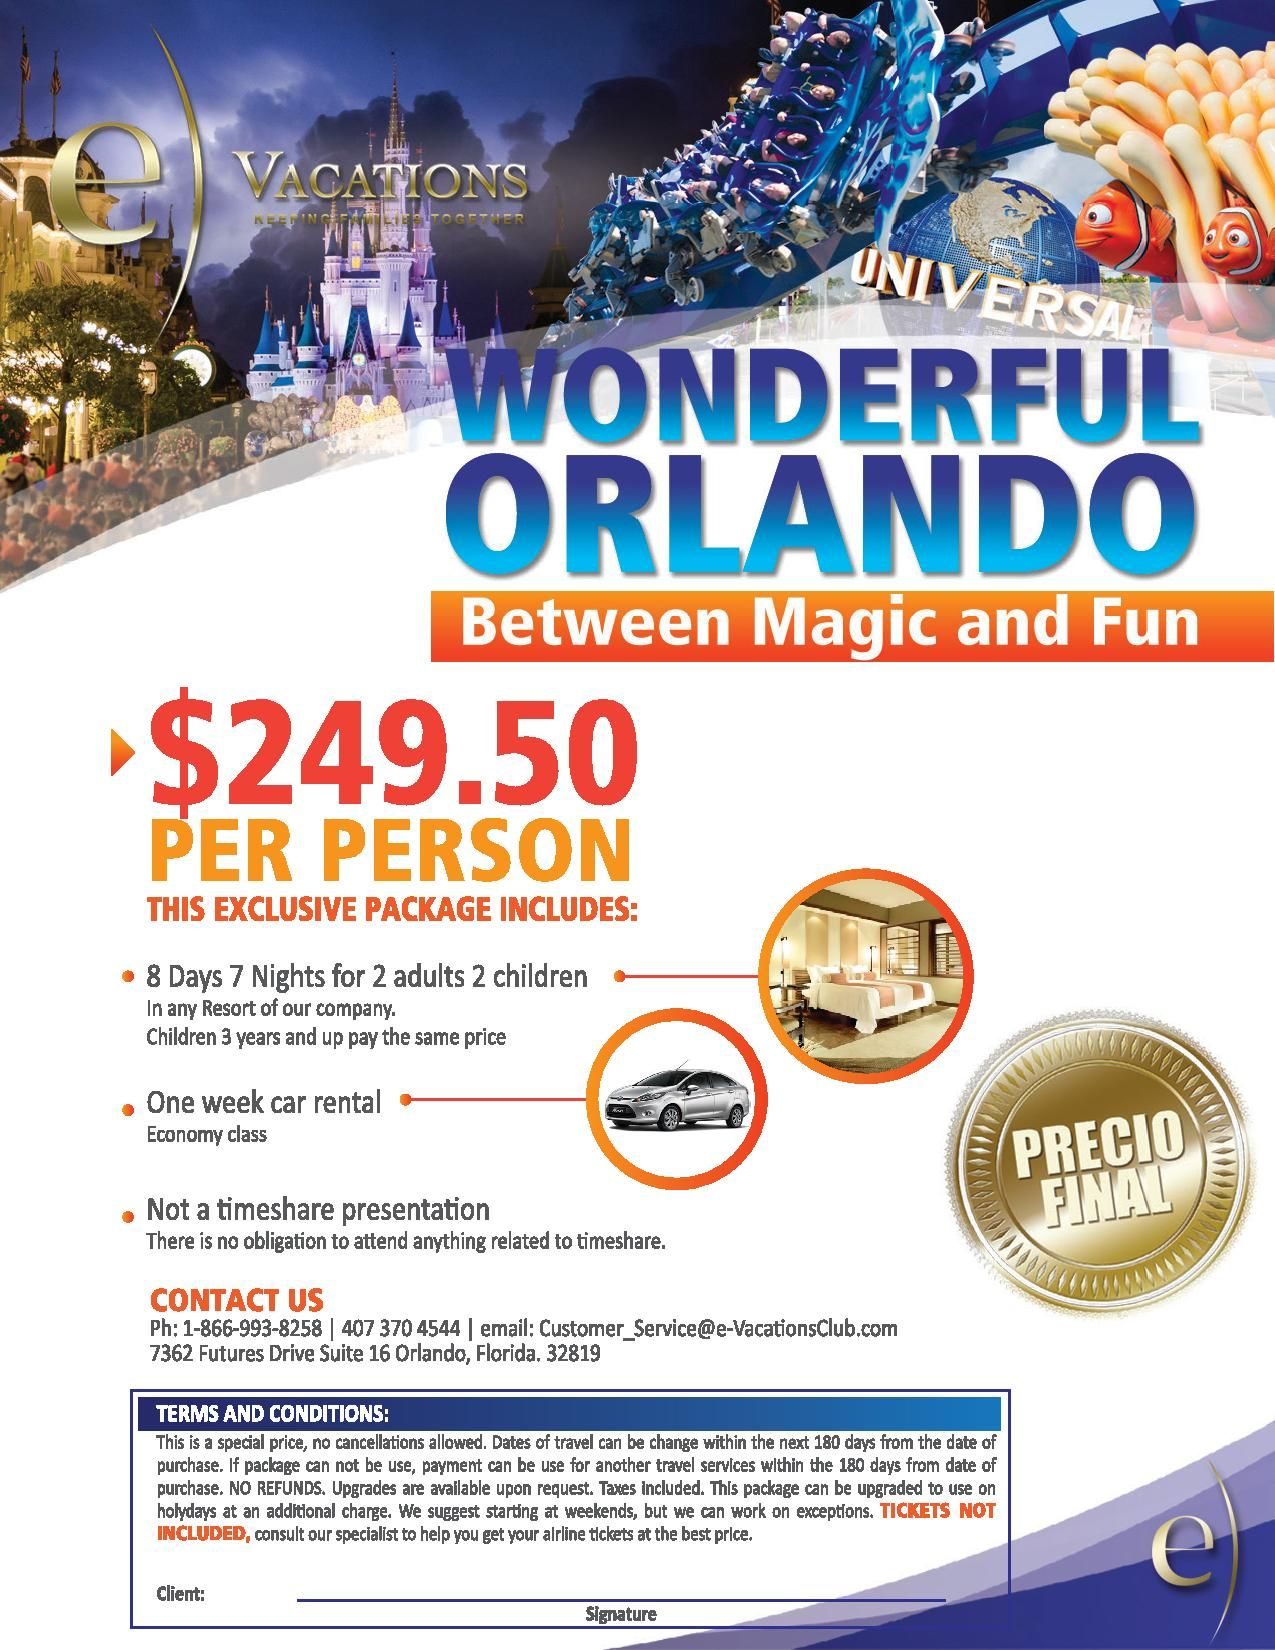 Check Out Our Latest Offers In Wonderful Orlando Between Magic